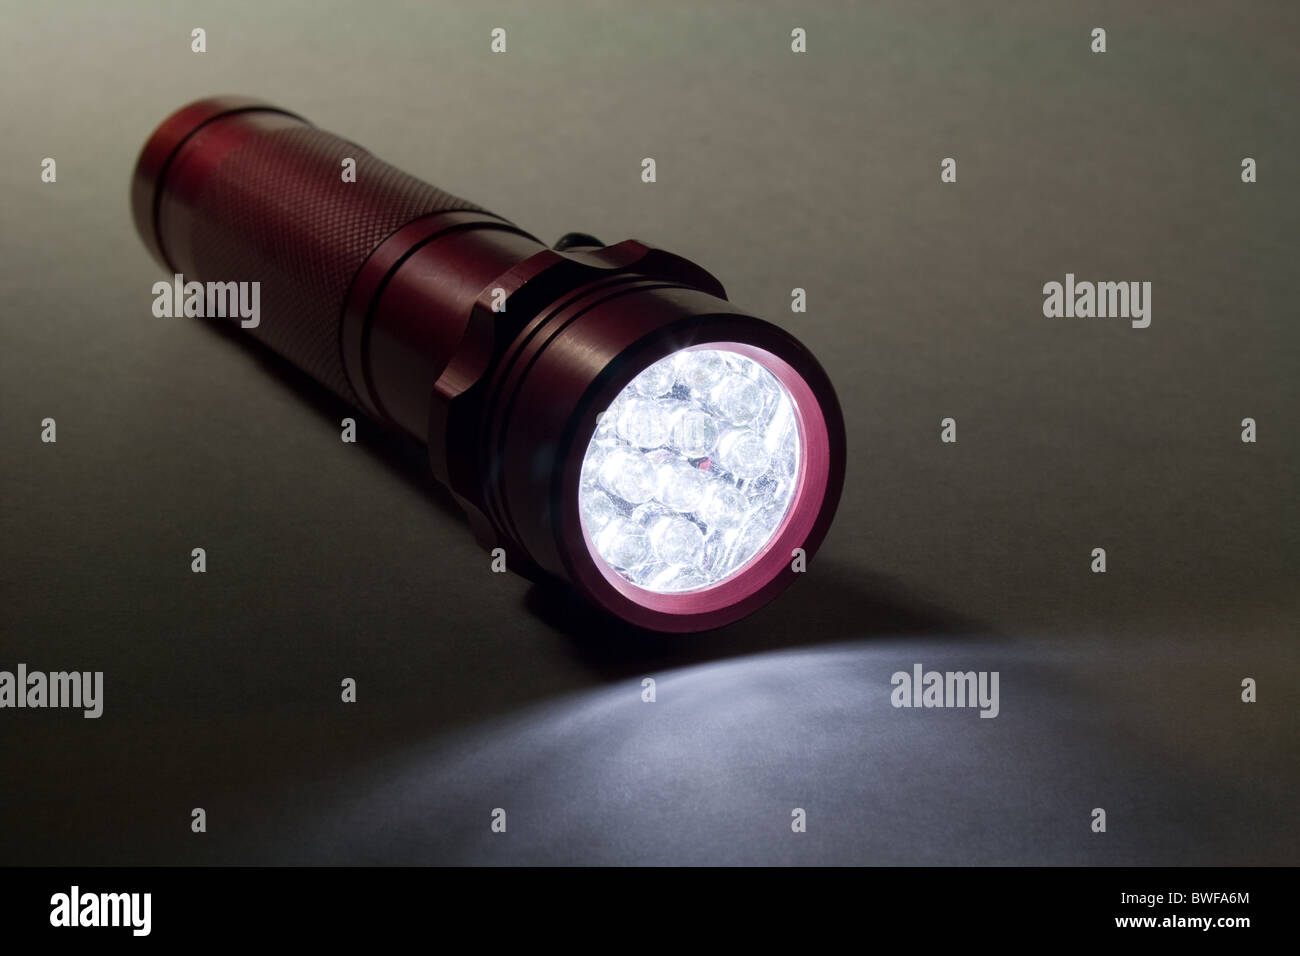 White LED - Light Emitting Diode Flashlight Stock Photo